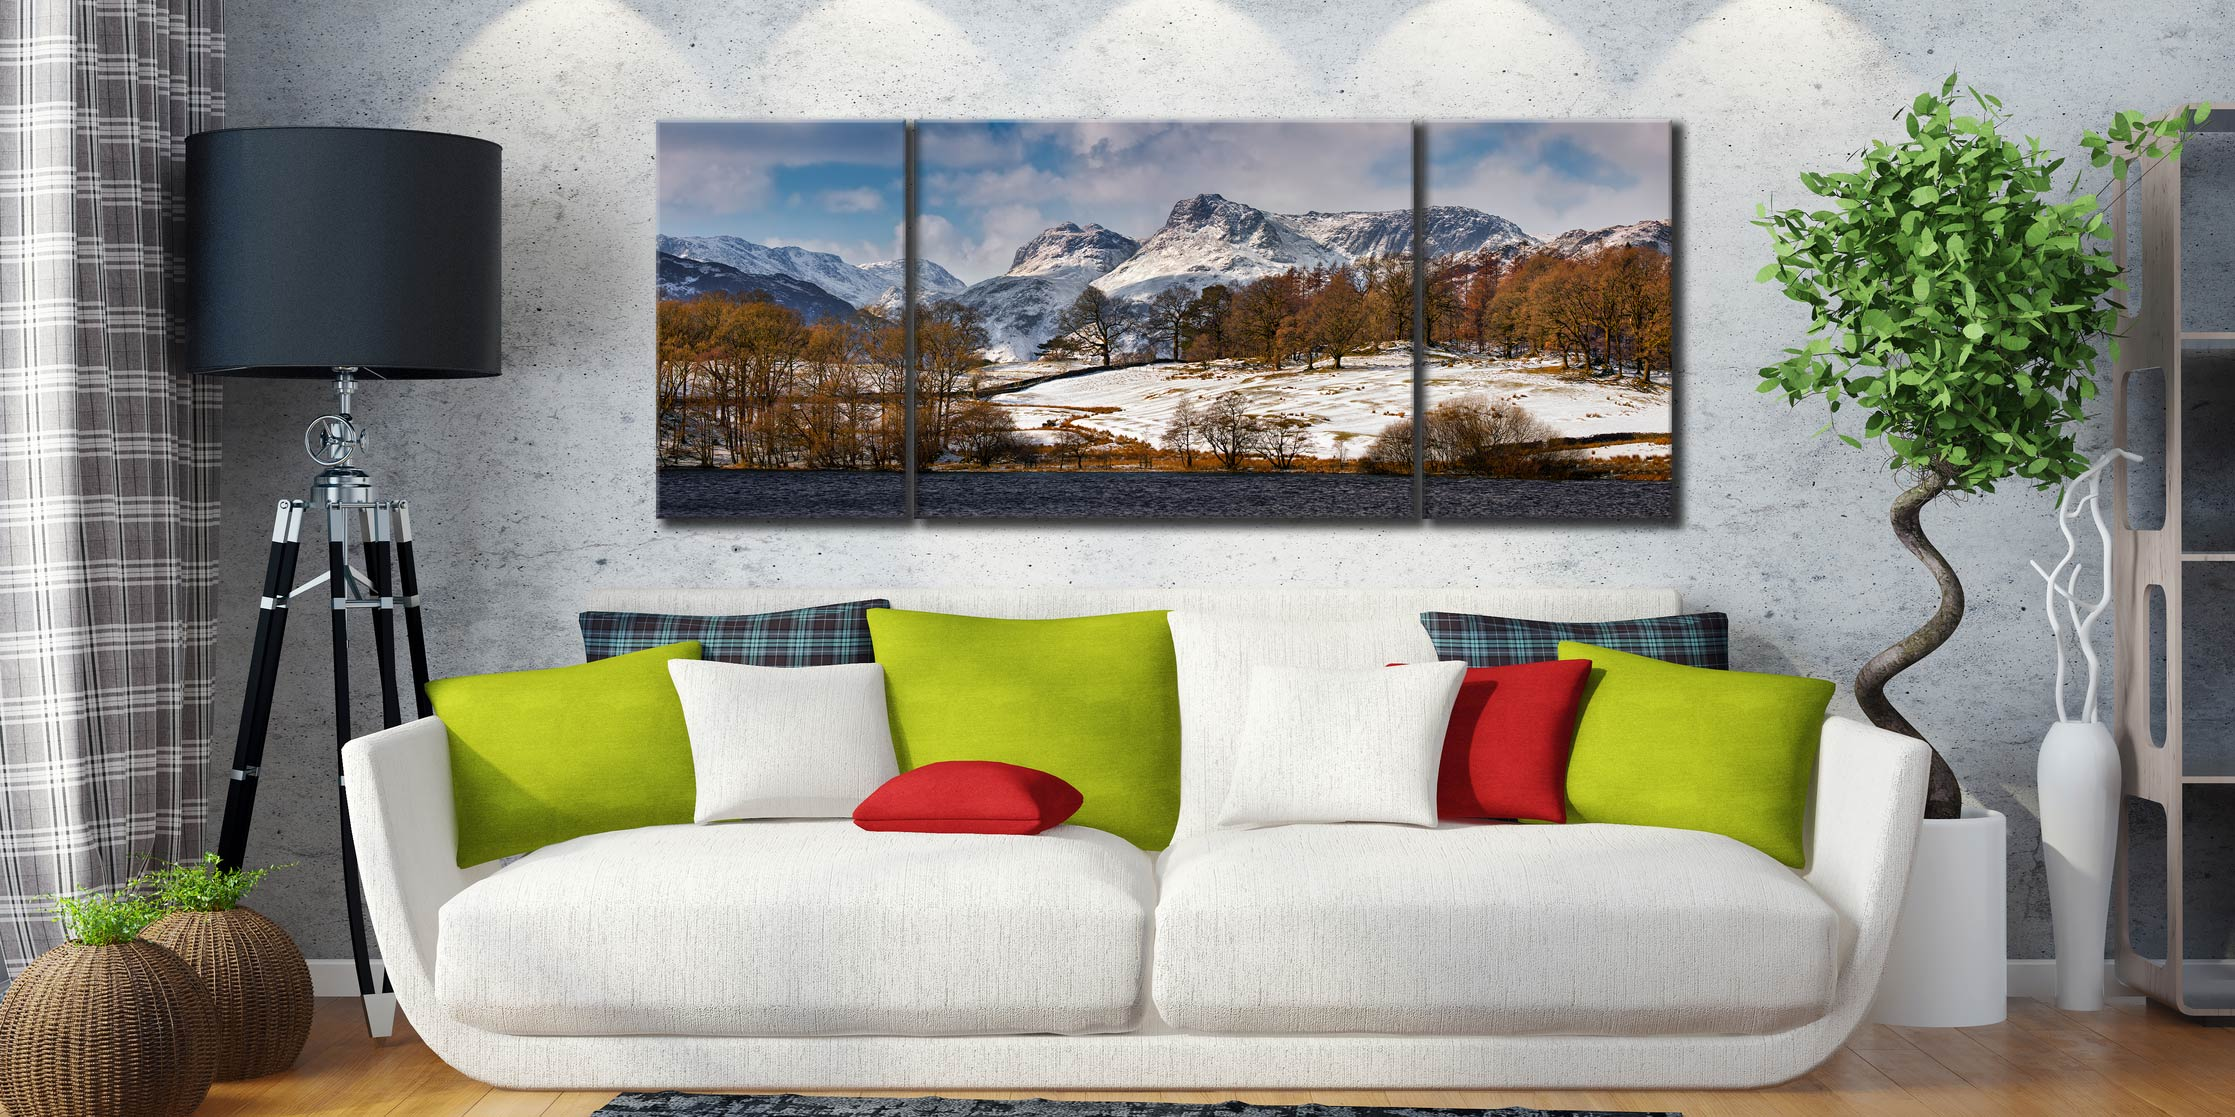 Loughrigg Tarn Winter View  - 3 Panel Wide Mid Canvas on Wall